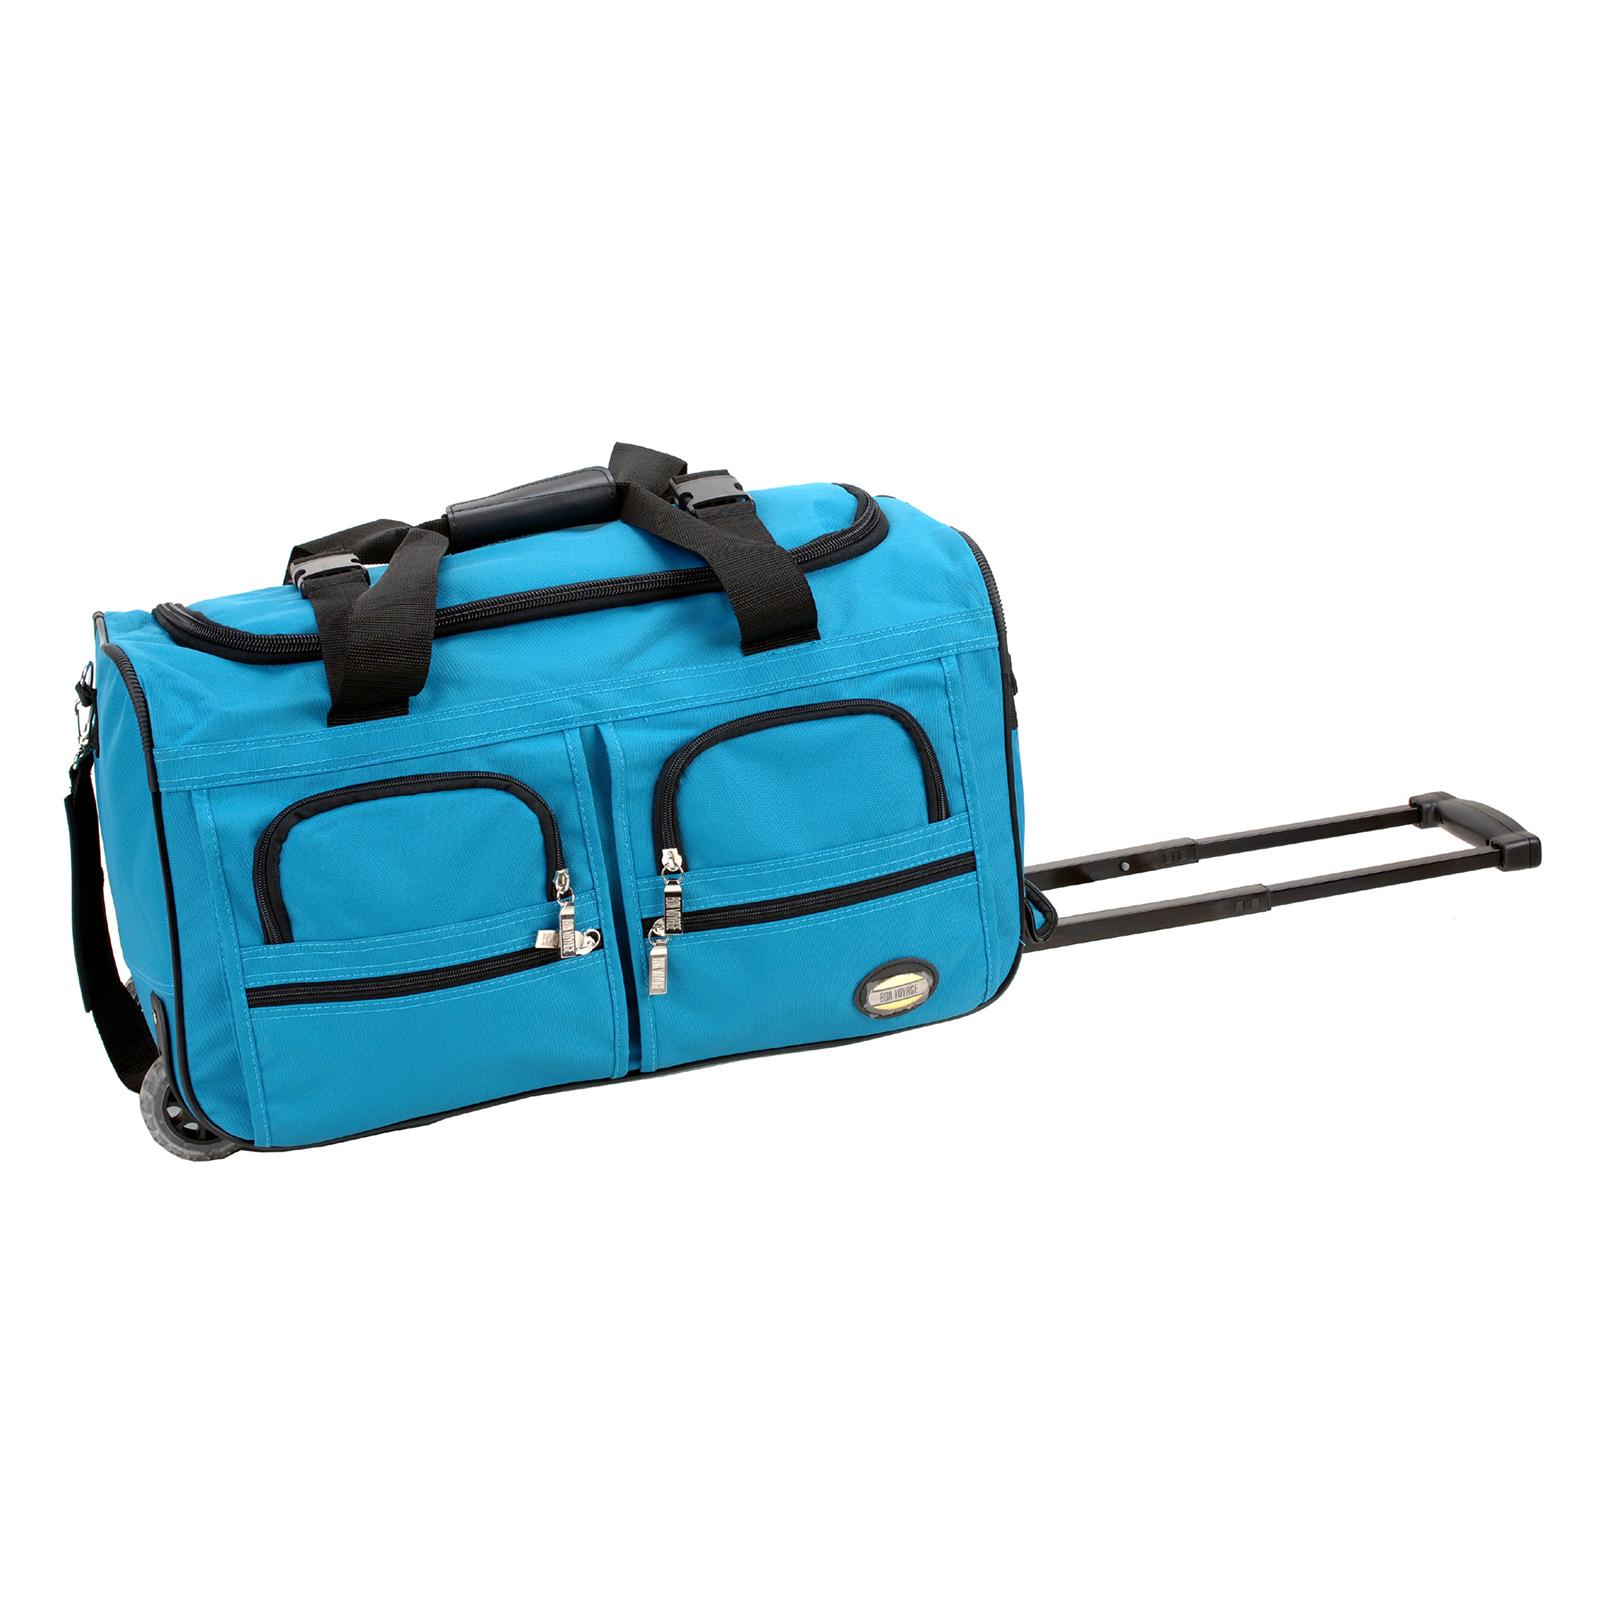 Rockland Luggage 22 in. Rolling Duffle Bag Turquoise - PR...